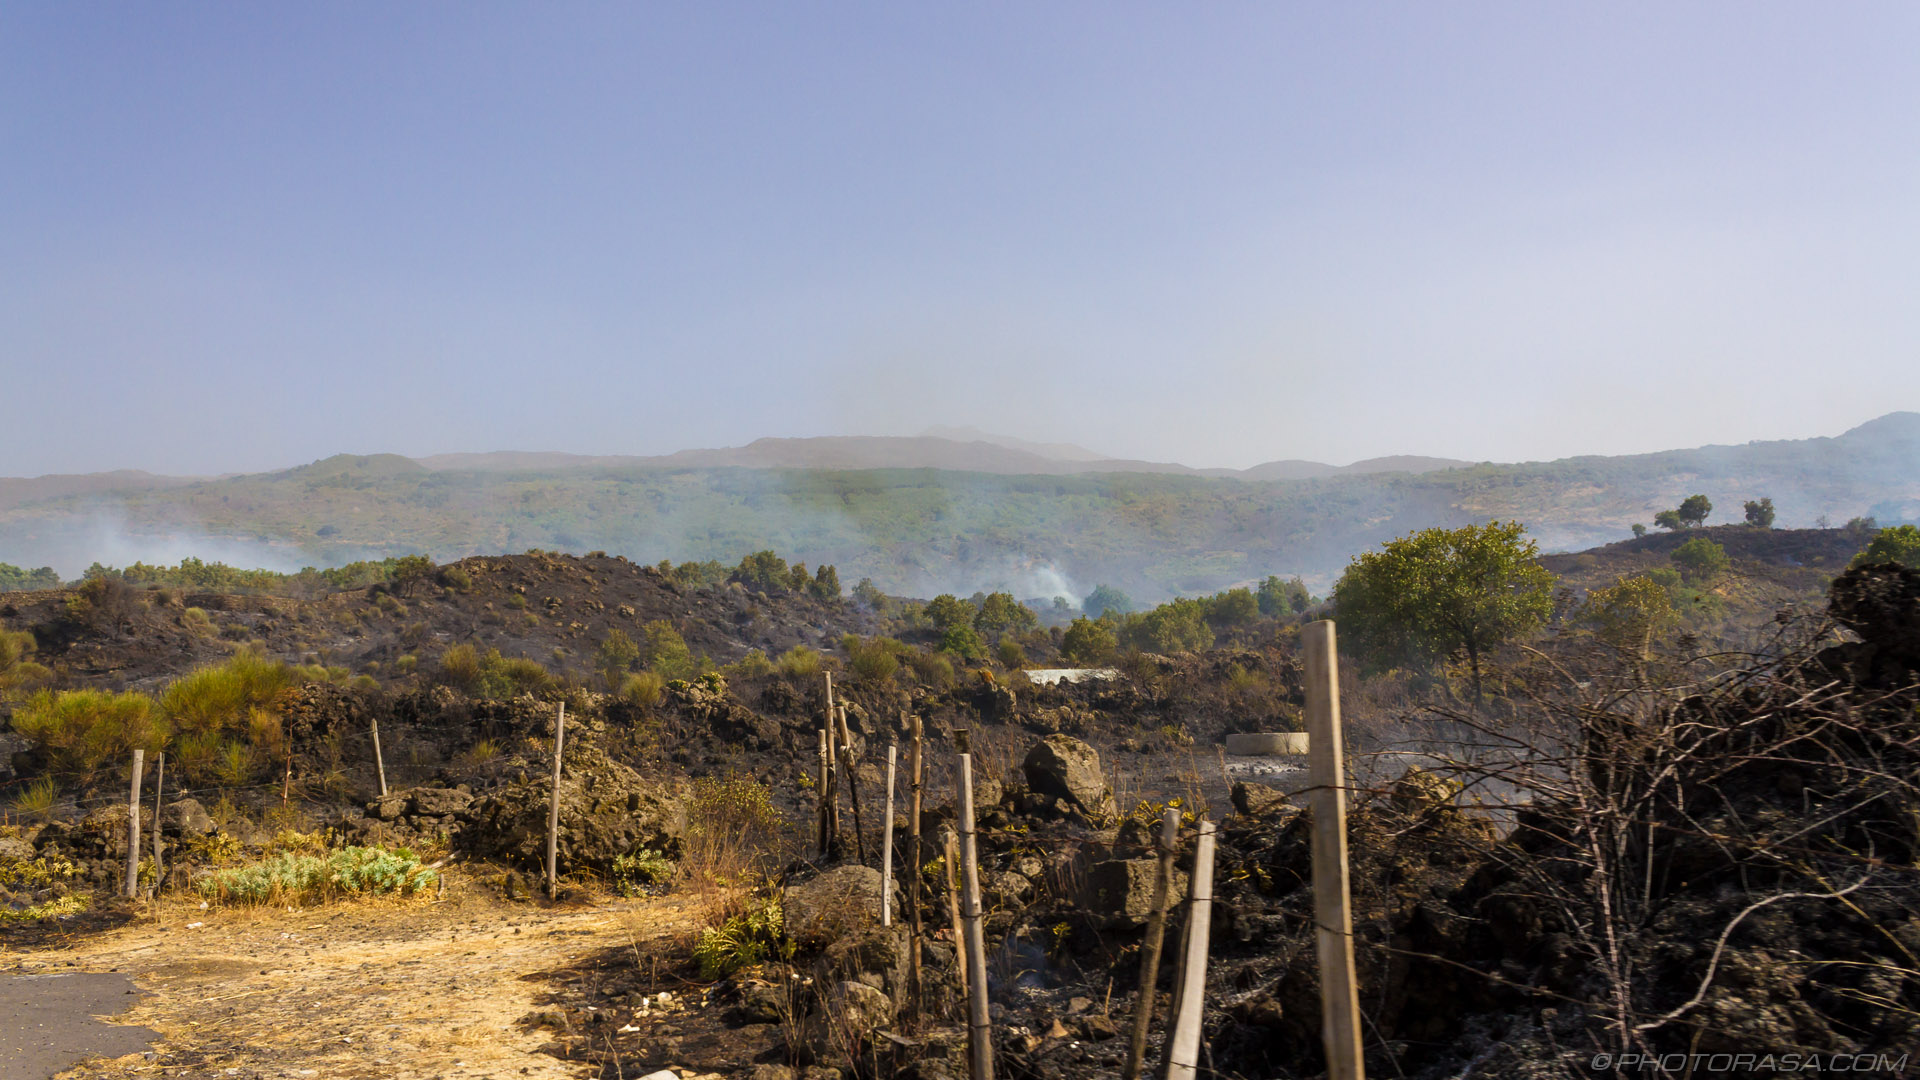 http://photorasa.com/bush-fires-in-sicily/